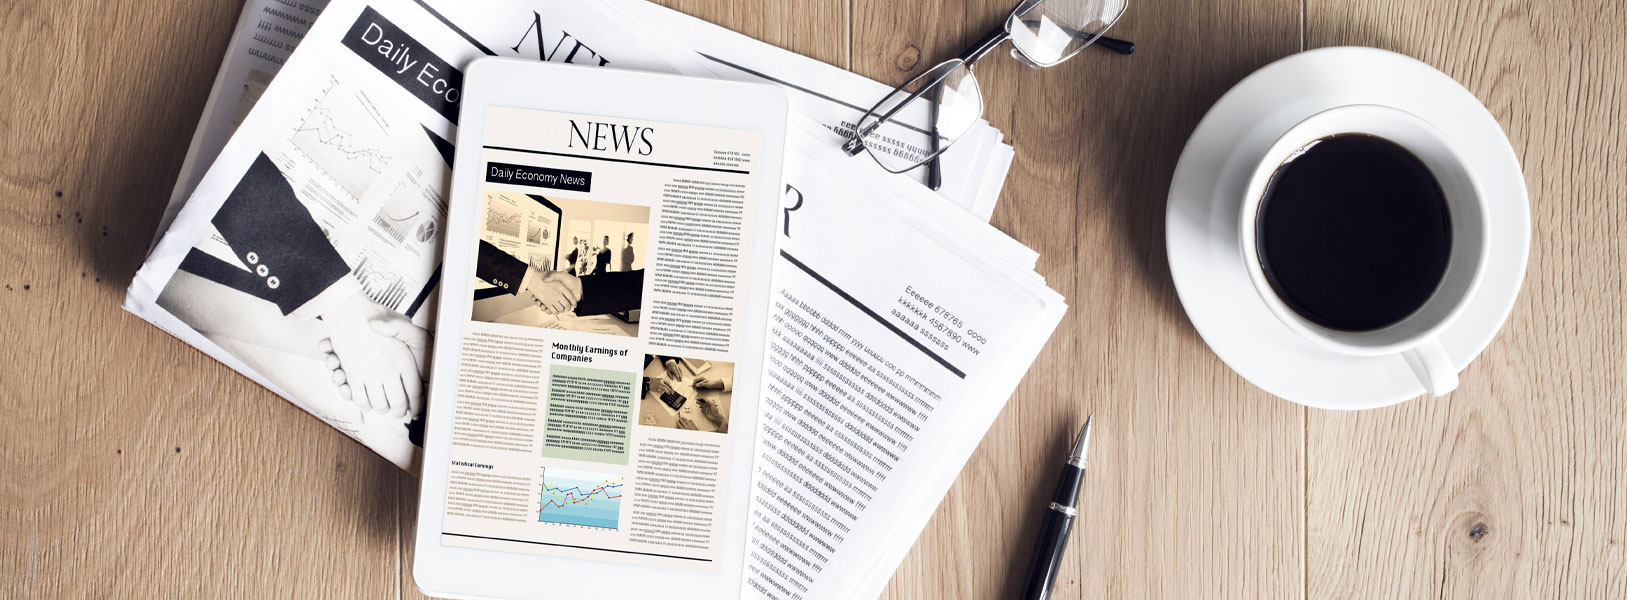 A pile of papers that are news related placed on a table